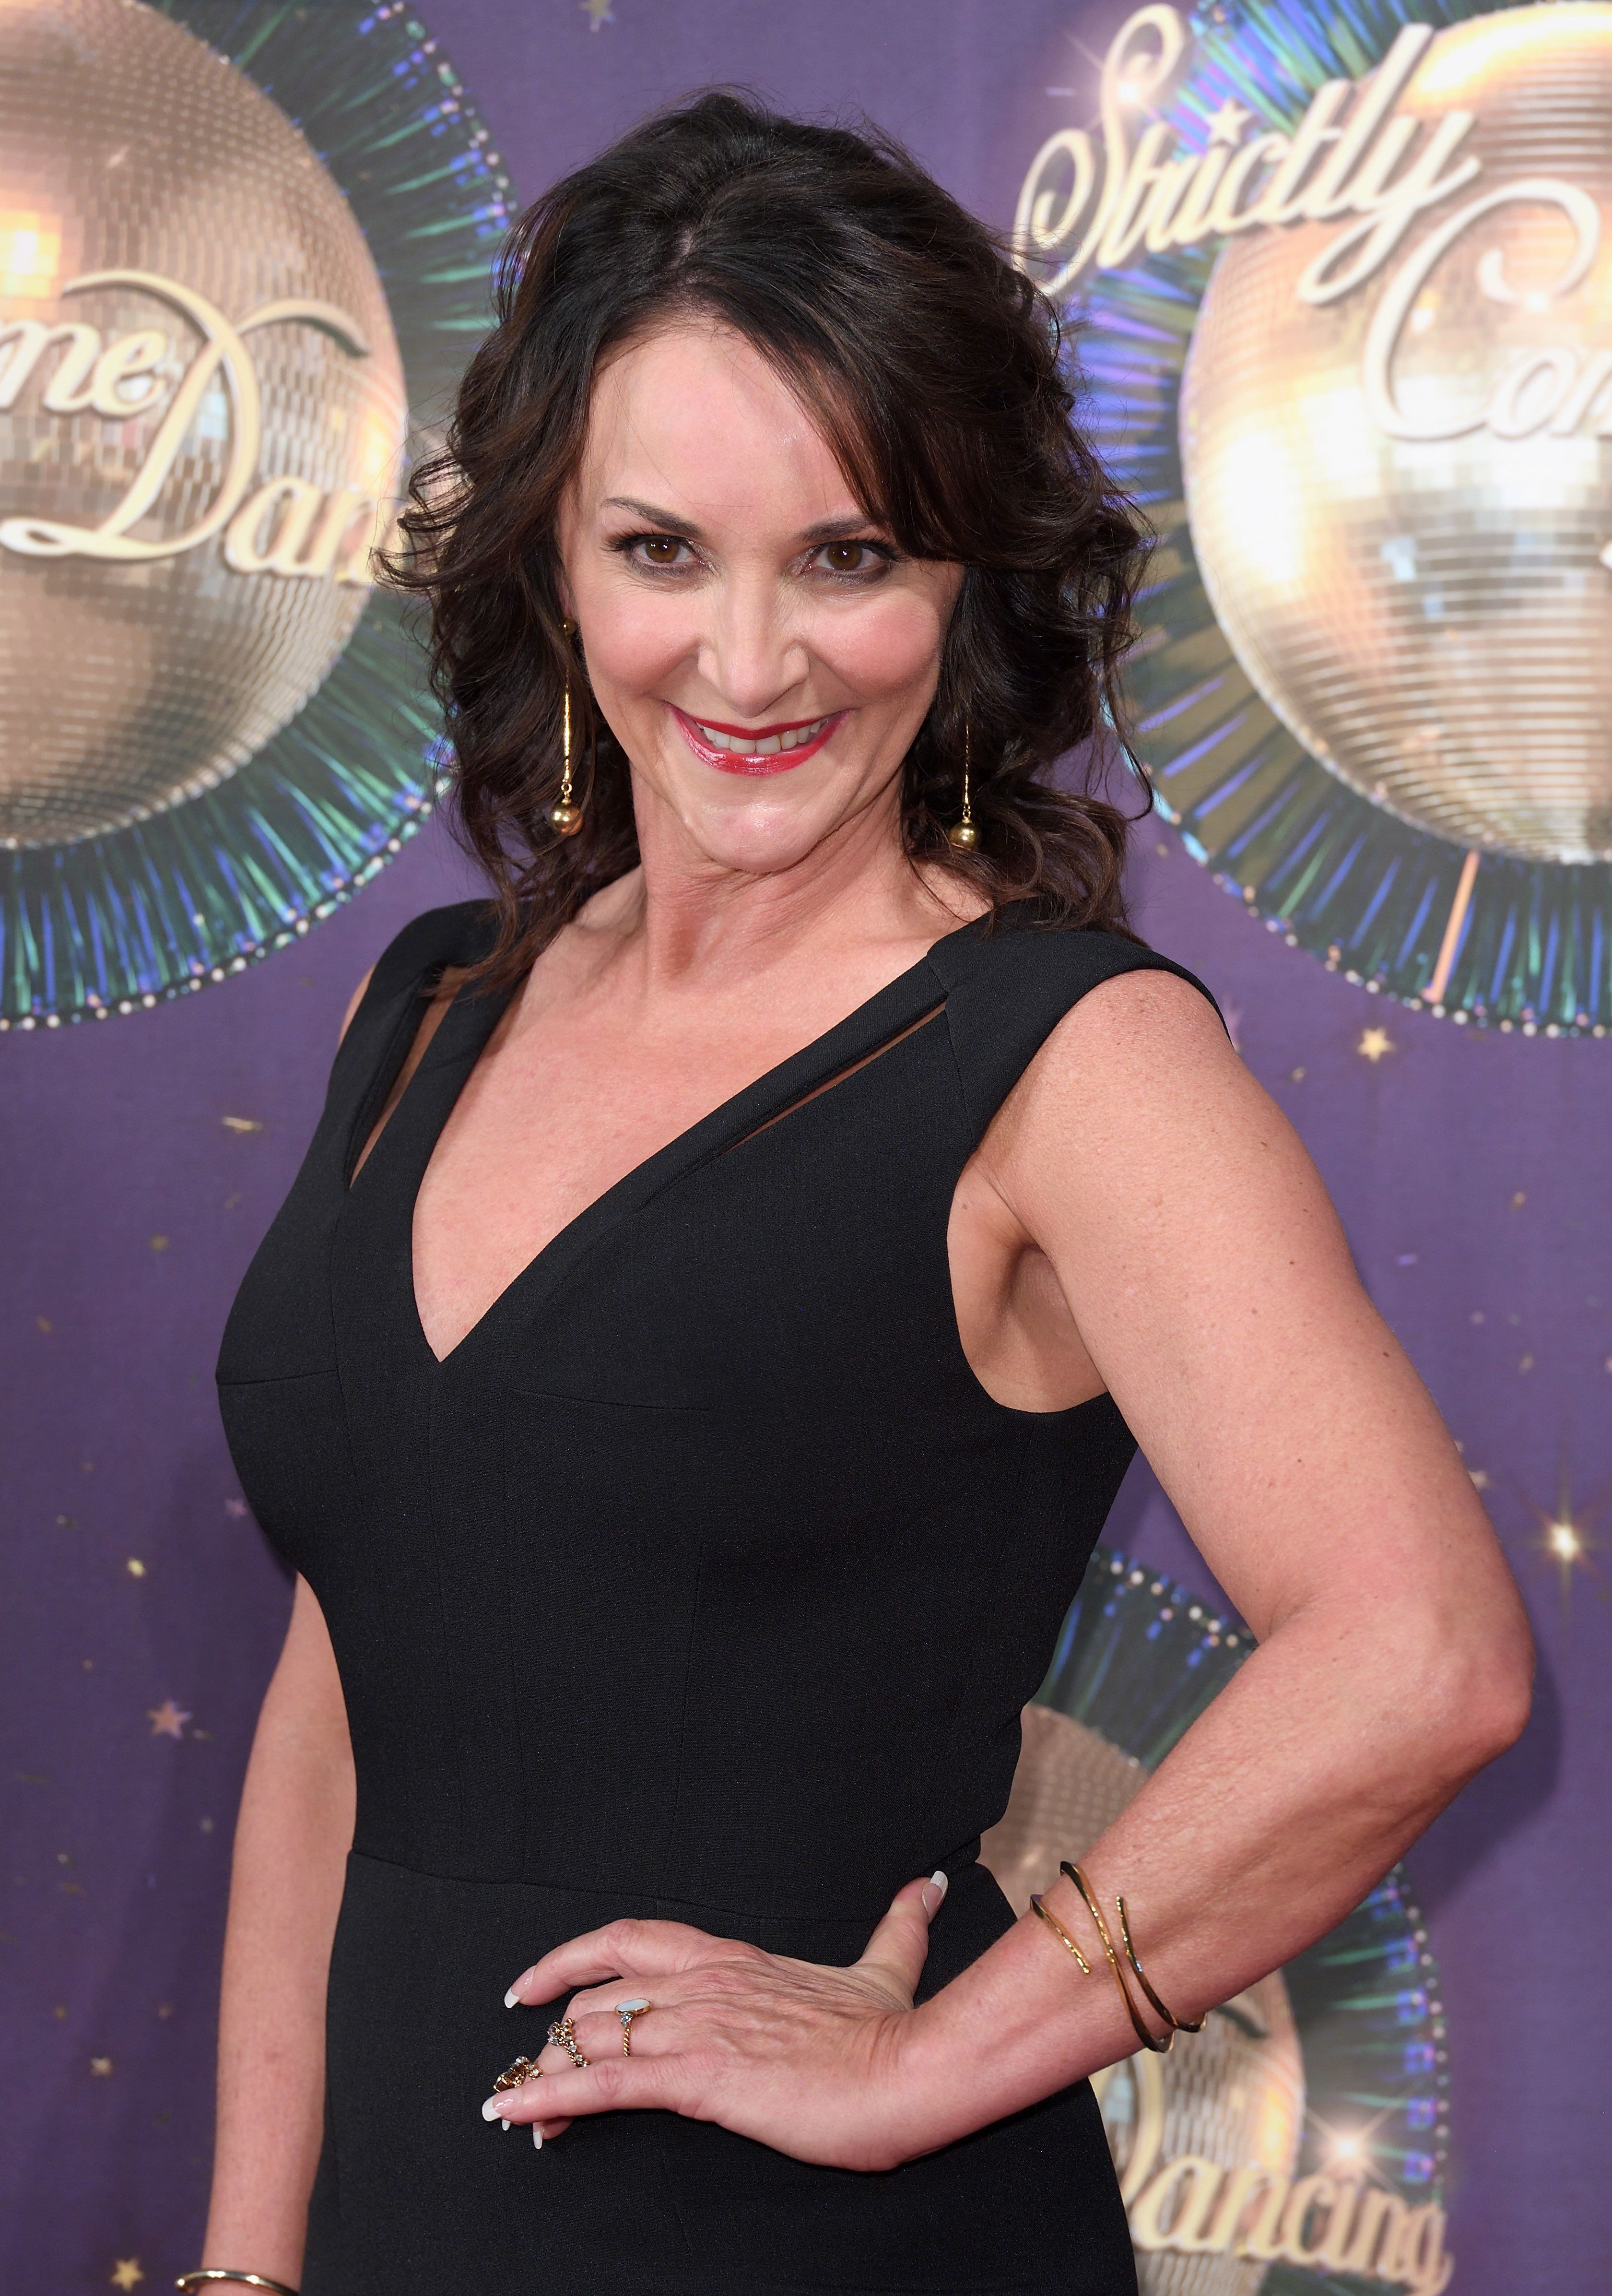 'Strictly' Star Shirley Ballas Has A Stern Message For Her Critics After Her 'Tough